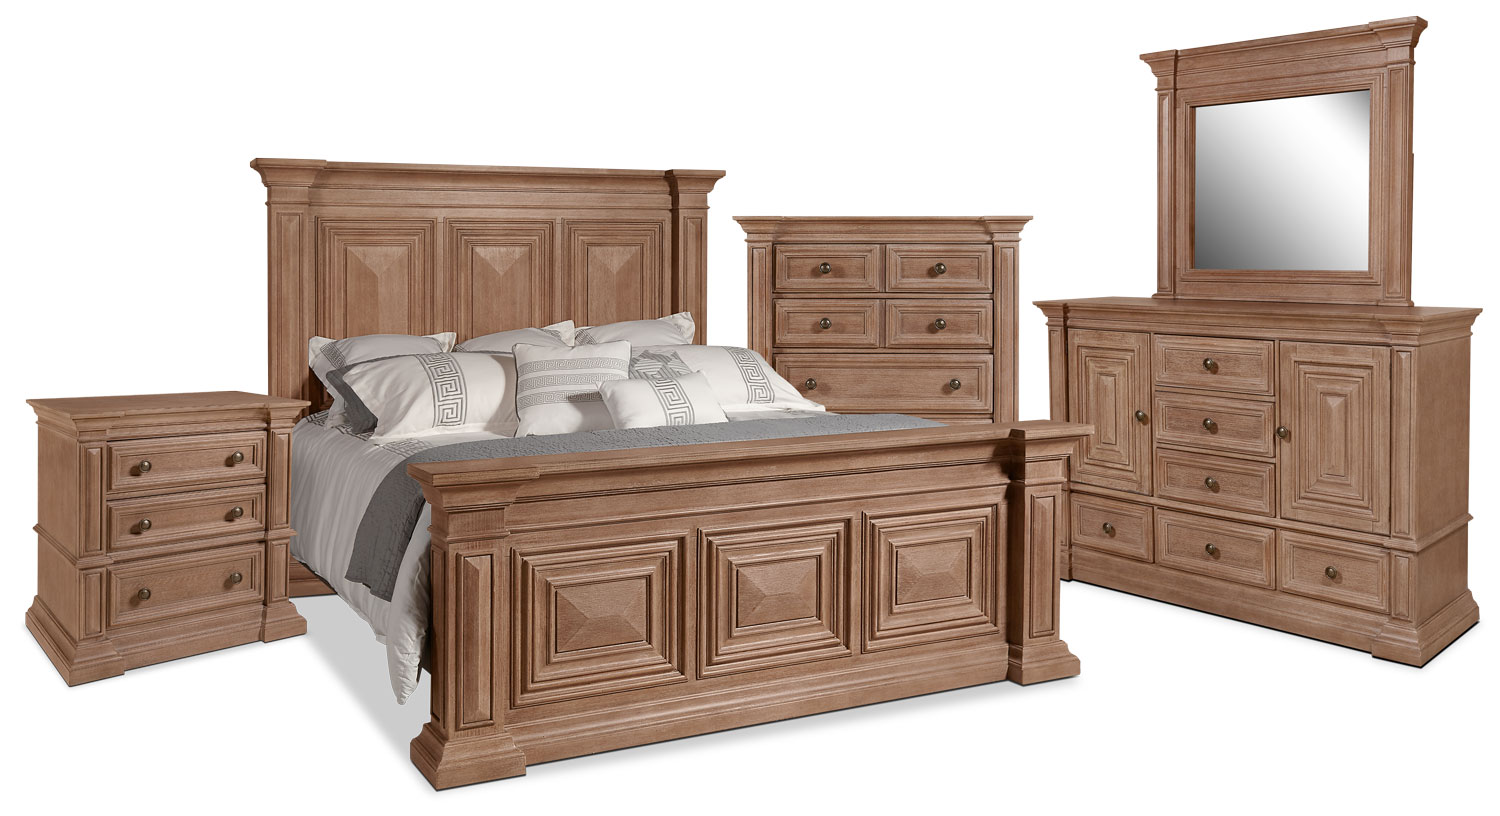 Sedona 7 piece king bedroom package the brick for Bedroom furniture packages